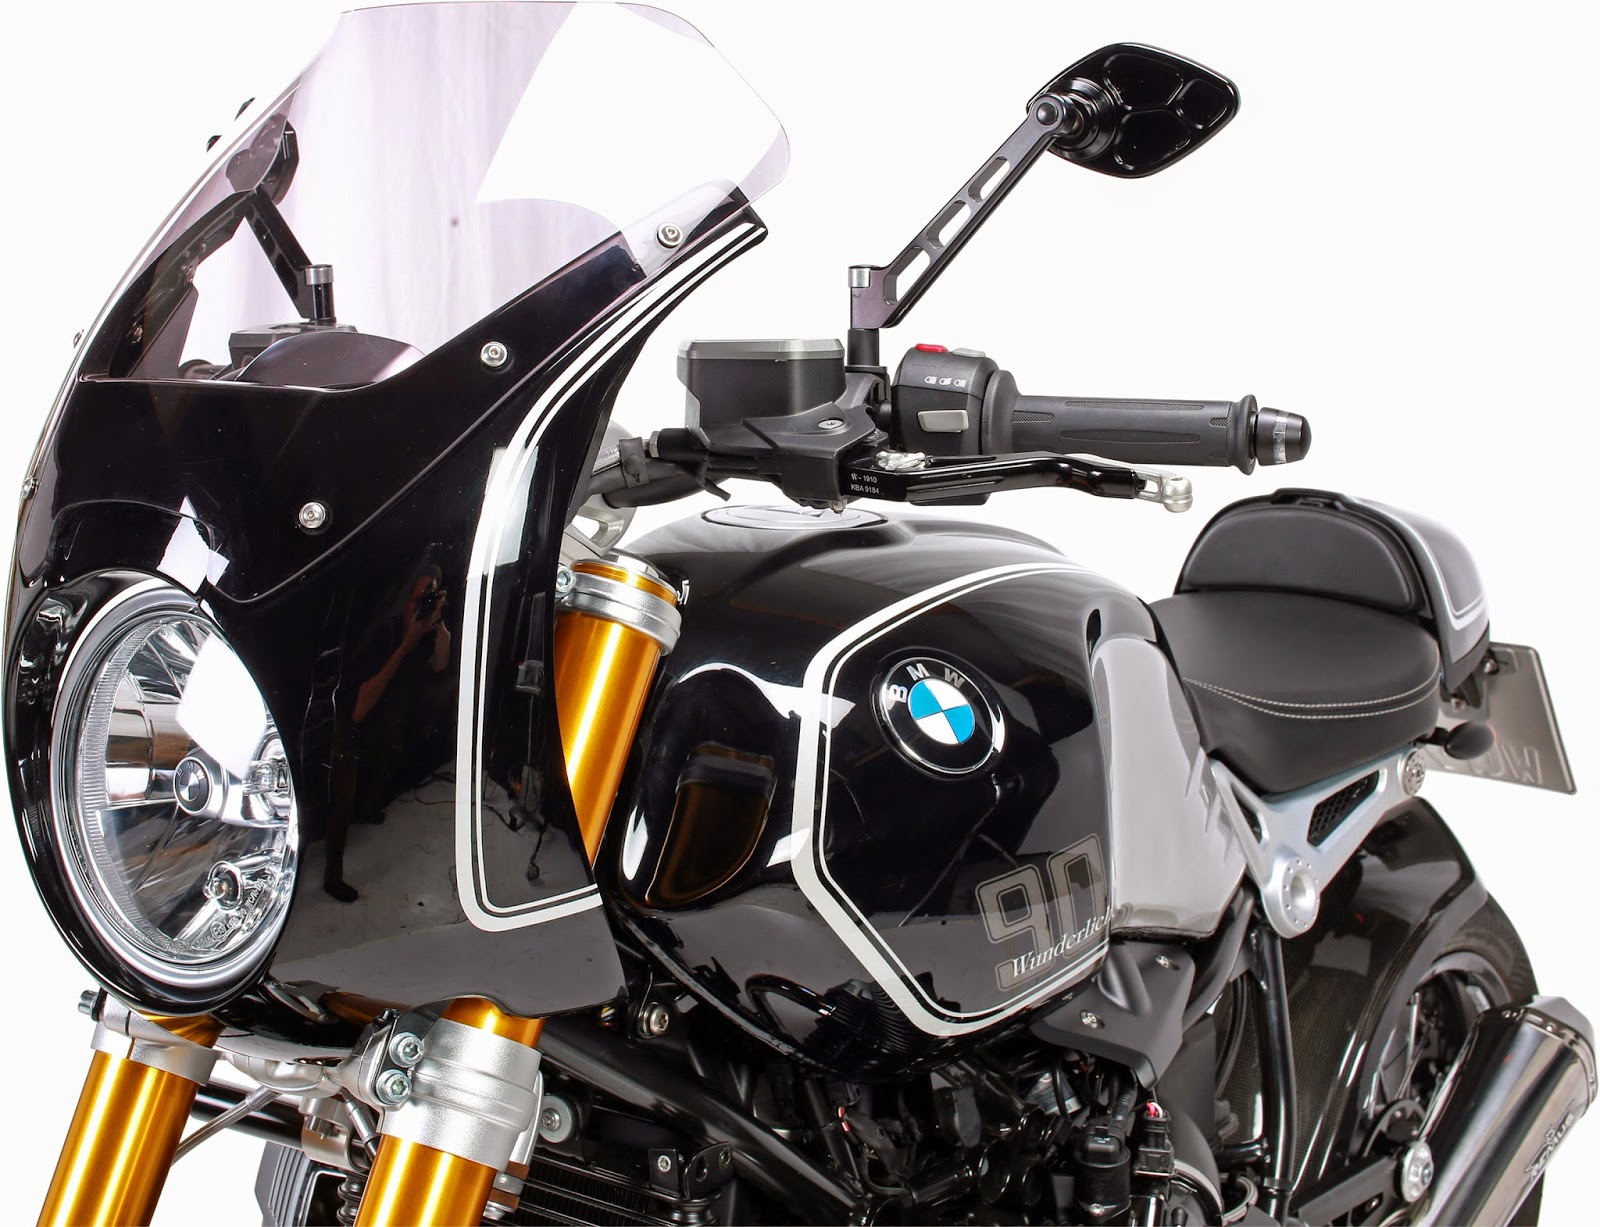 new bmw r ninet daytona fairing from wu visordown. Black Bedroom Furniture Sets. Home Design Ideas